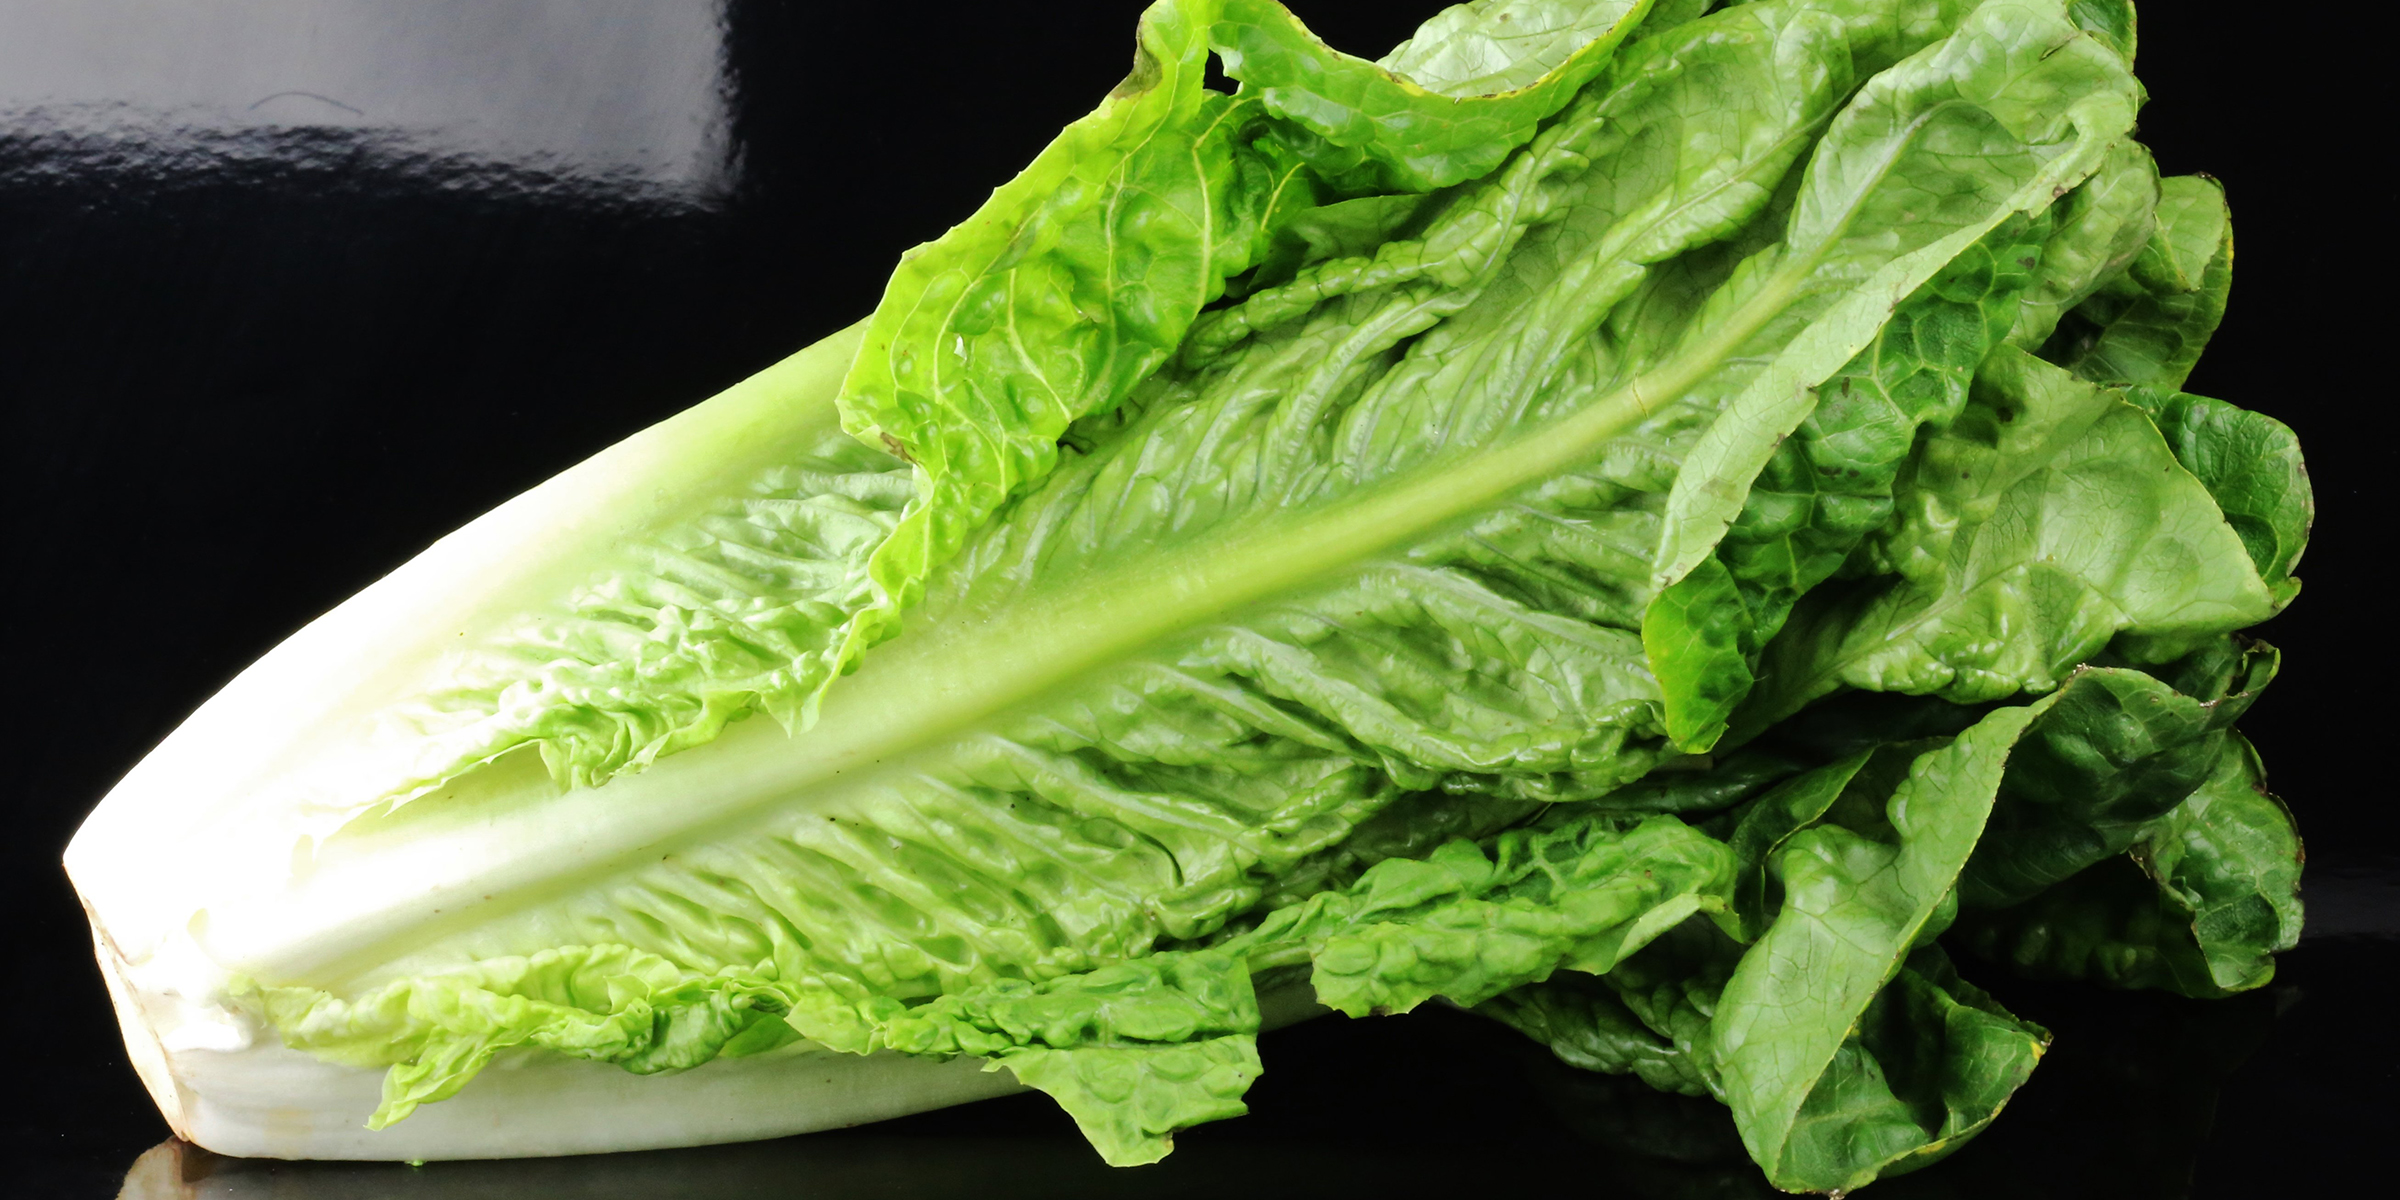 images Romaine lettuce E coli possibly traced to past outbreak